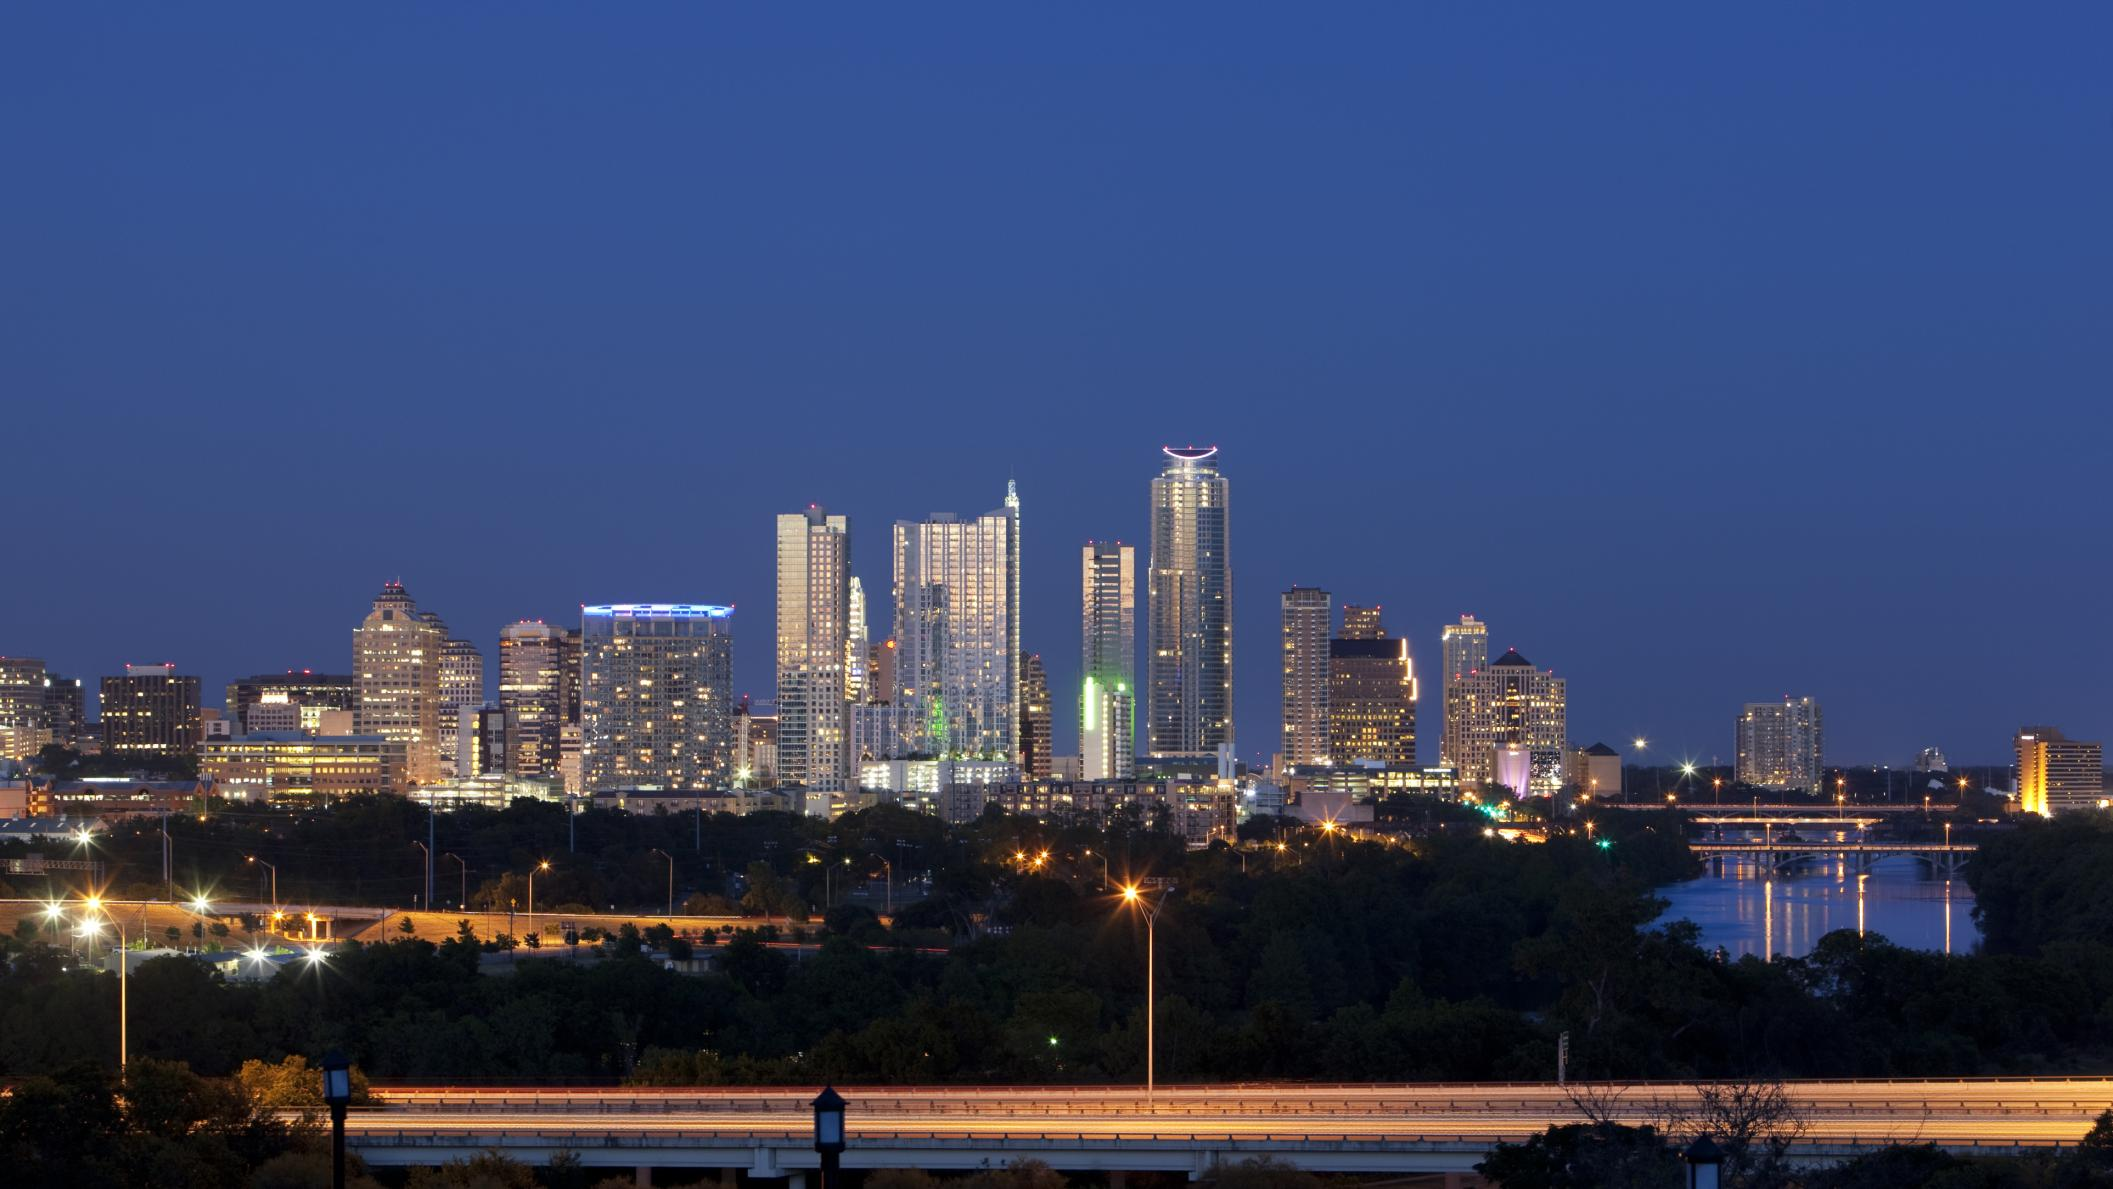 We all joke about growing too fast, but have you seriously tried to discourage someone from moving to Austin in the past year?